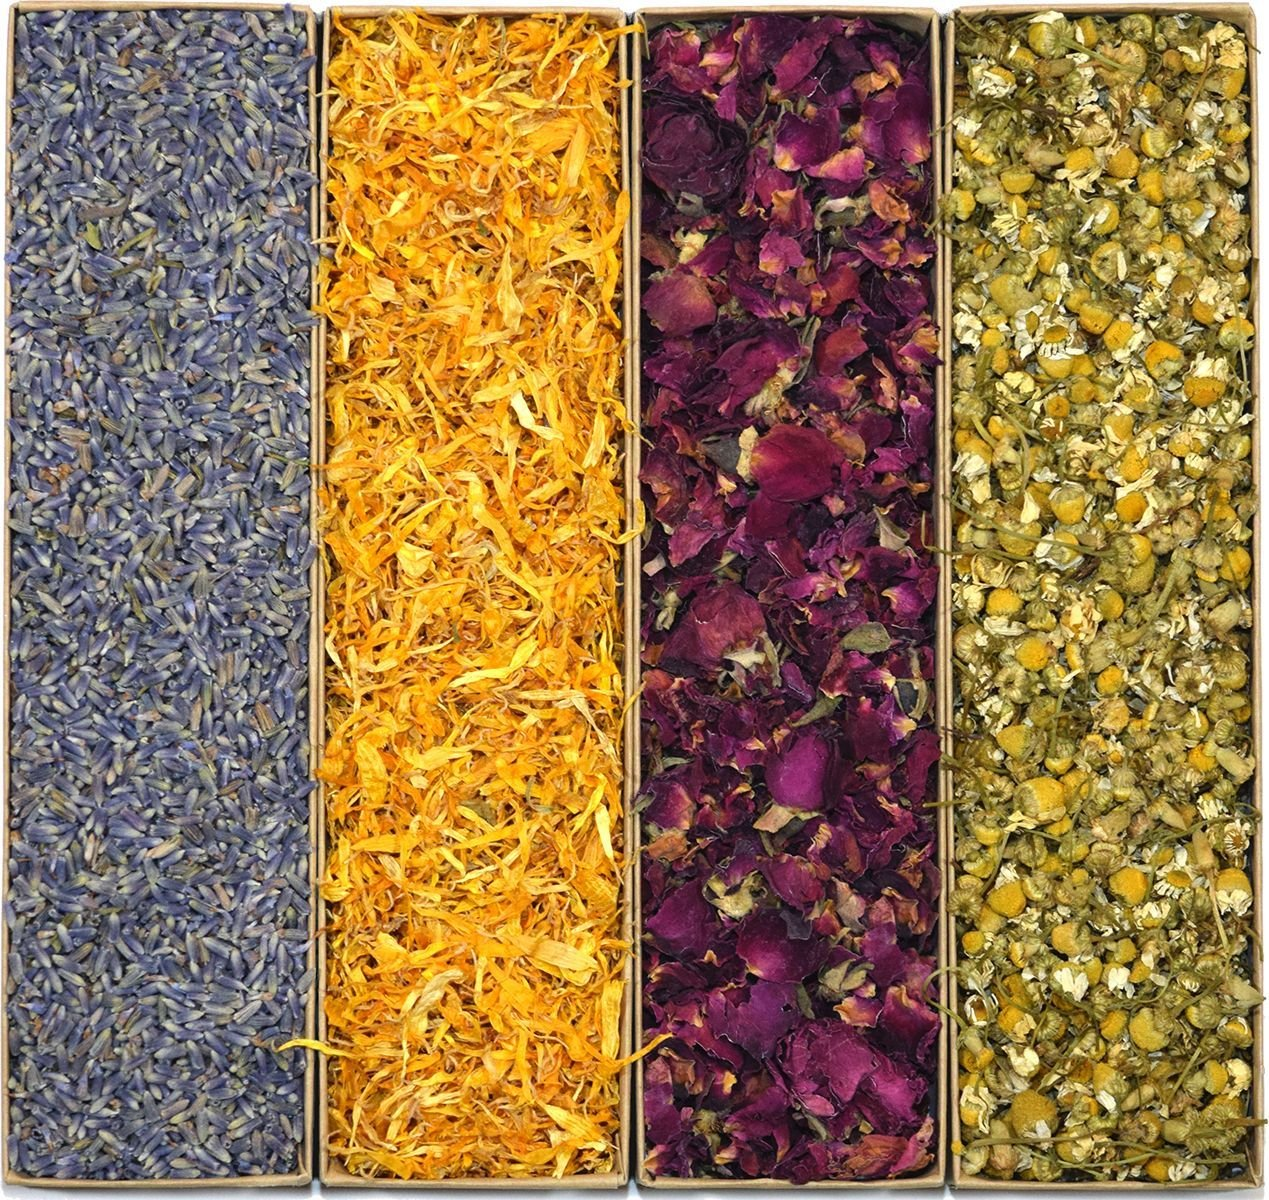 Large Botanical Flower Kit: Flower Petals and Buds. Craft Kit includes Lavender, Calendula, Rose, and Chamomile, 2 Cups Each! Perfect For All Kinds of Crafts! by Country Meadow Ltd (Image #1)